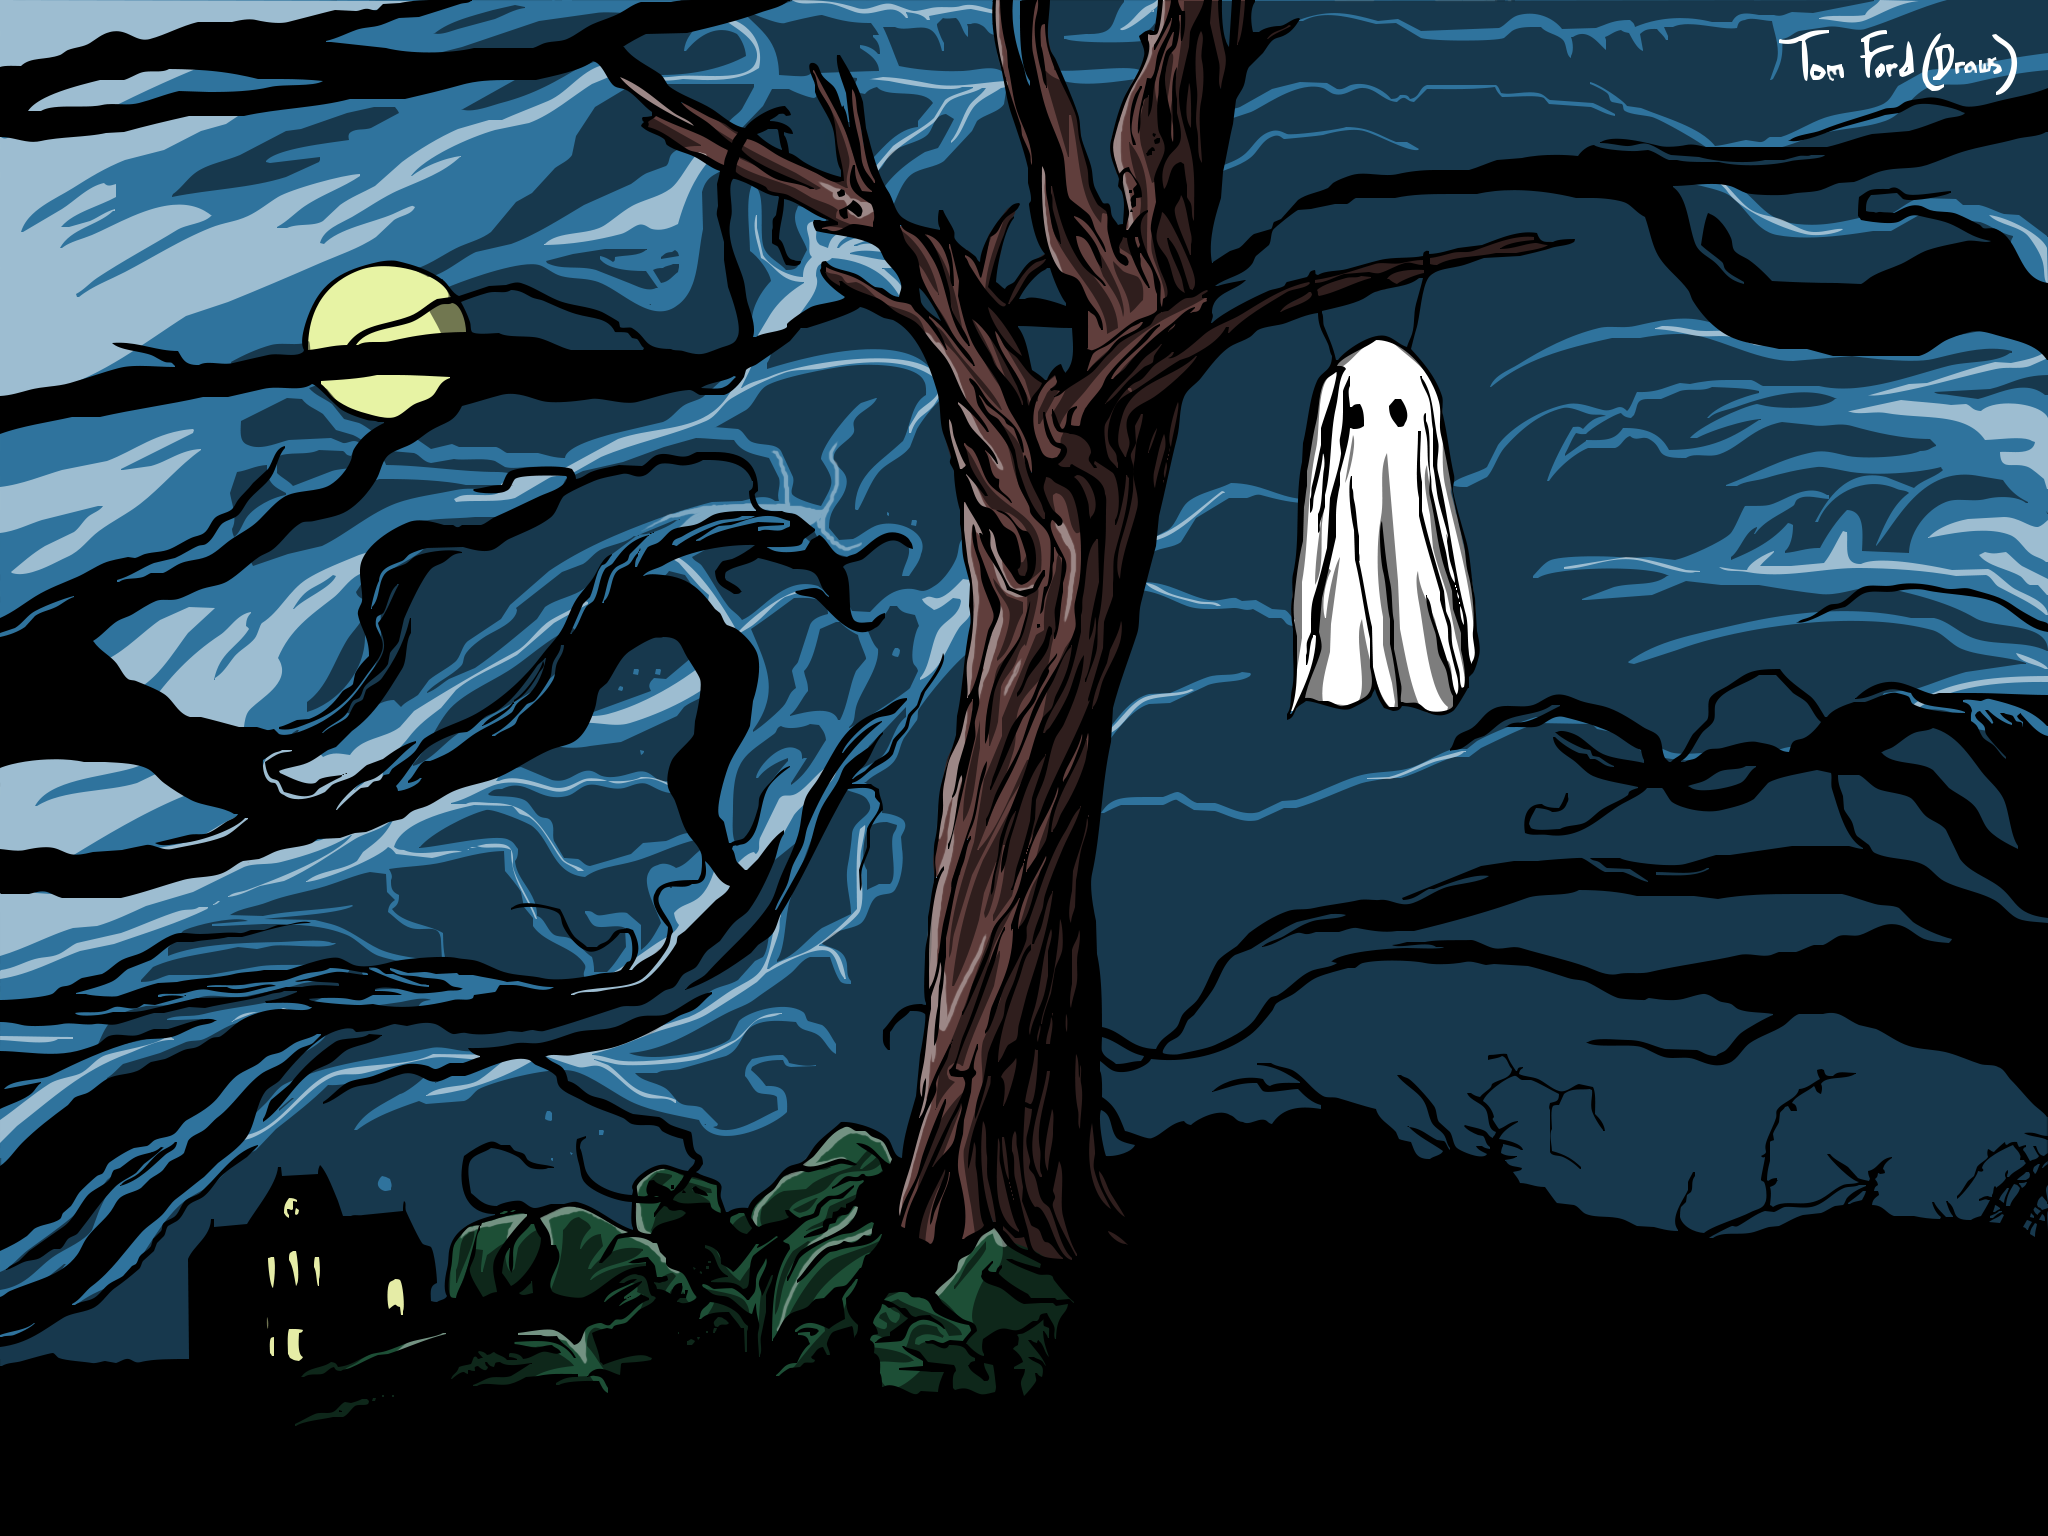 Why do we insist on believing in ghosts?